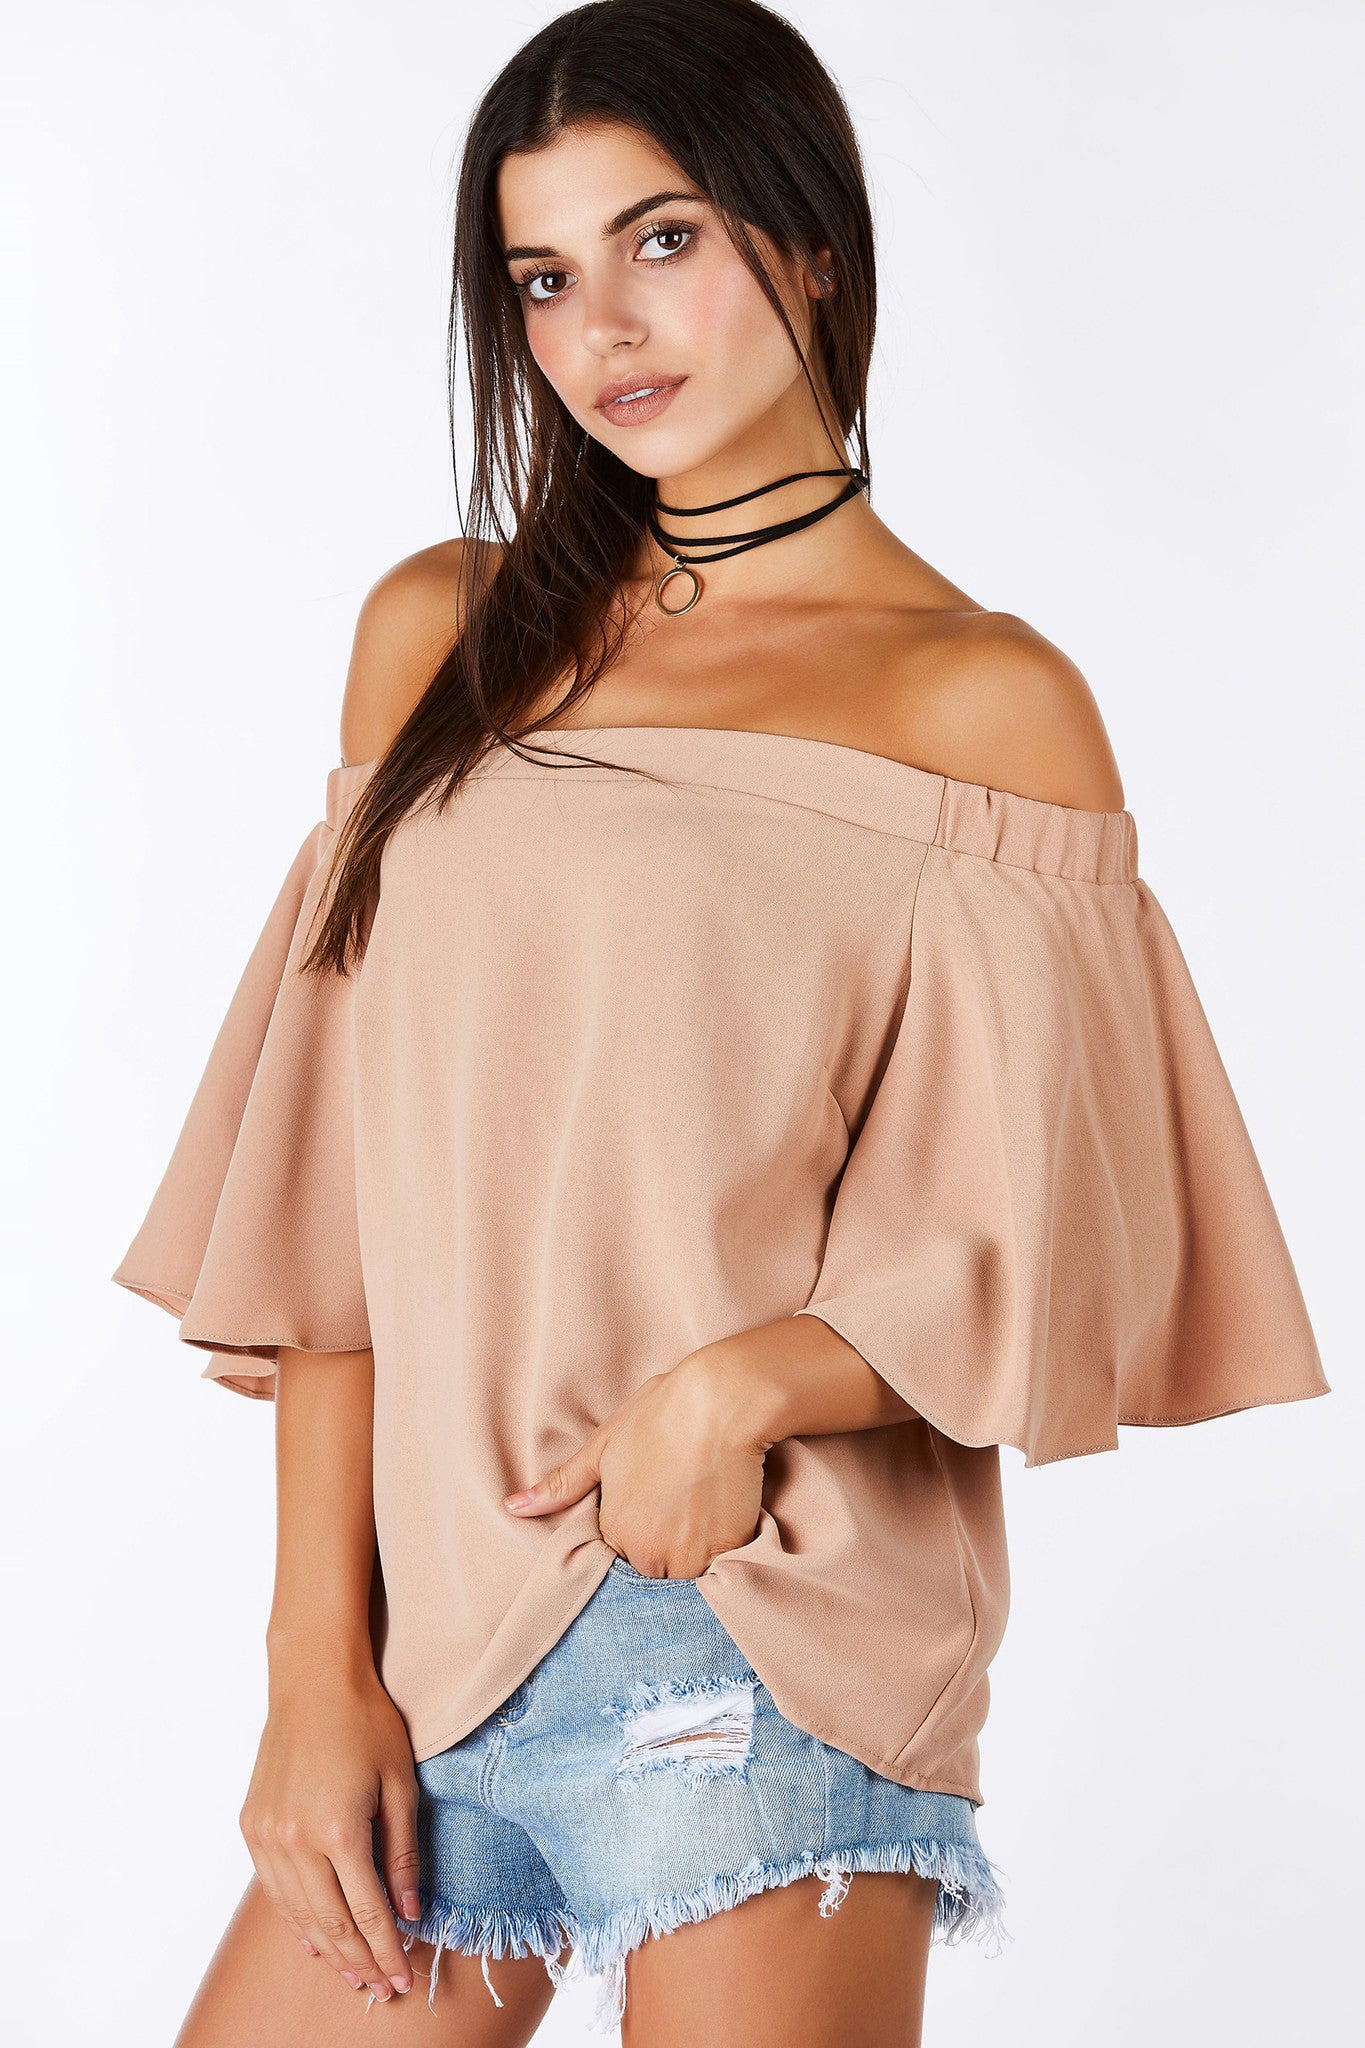 A great top to pair with skinny pants for a chic evening look. Lovely material to hang loose for comfort but maintaining a flattering fit. Fluttery short sleeves with hidden zip closure in back for a sleek finish.